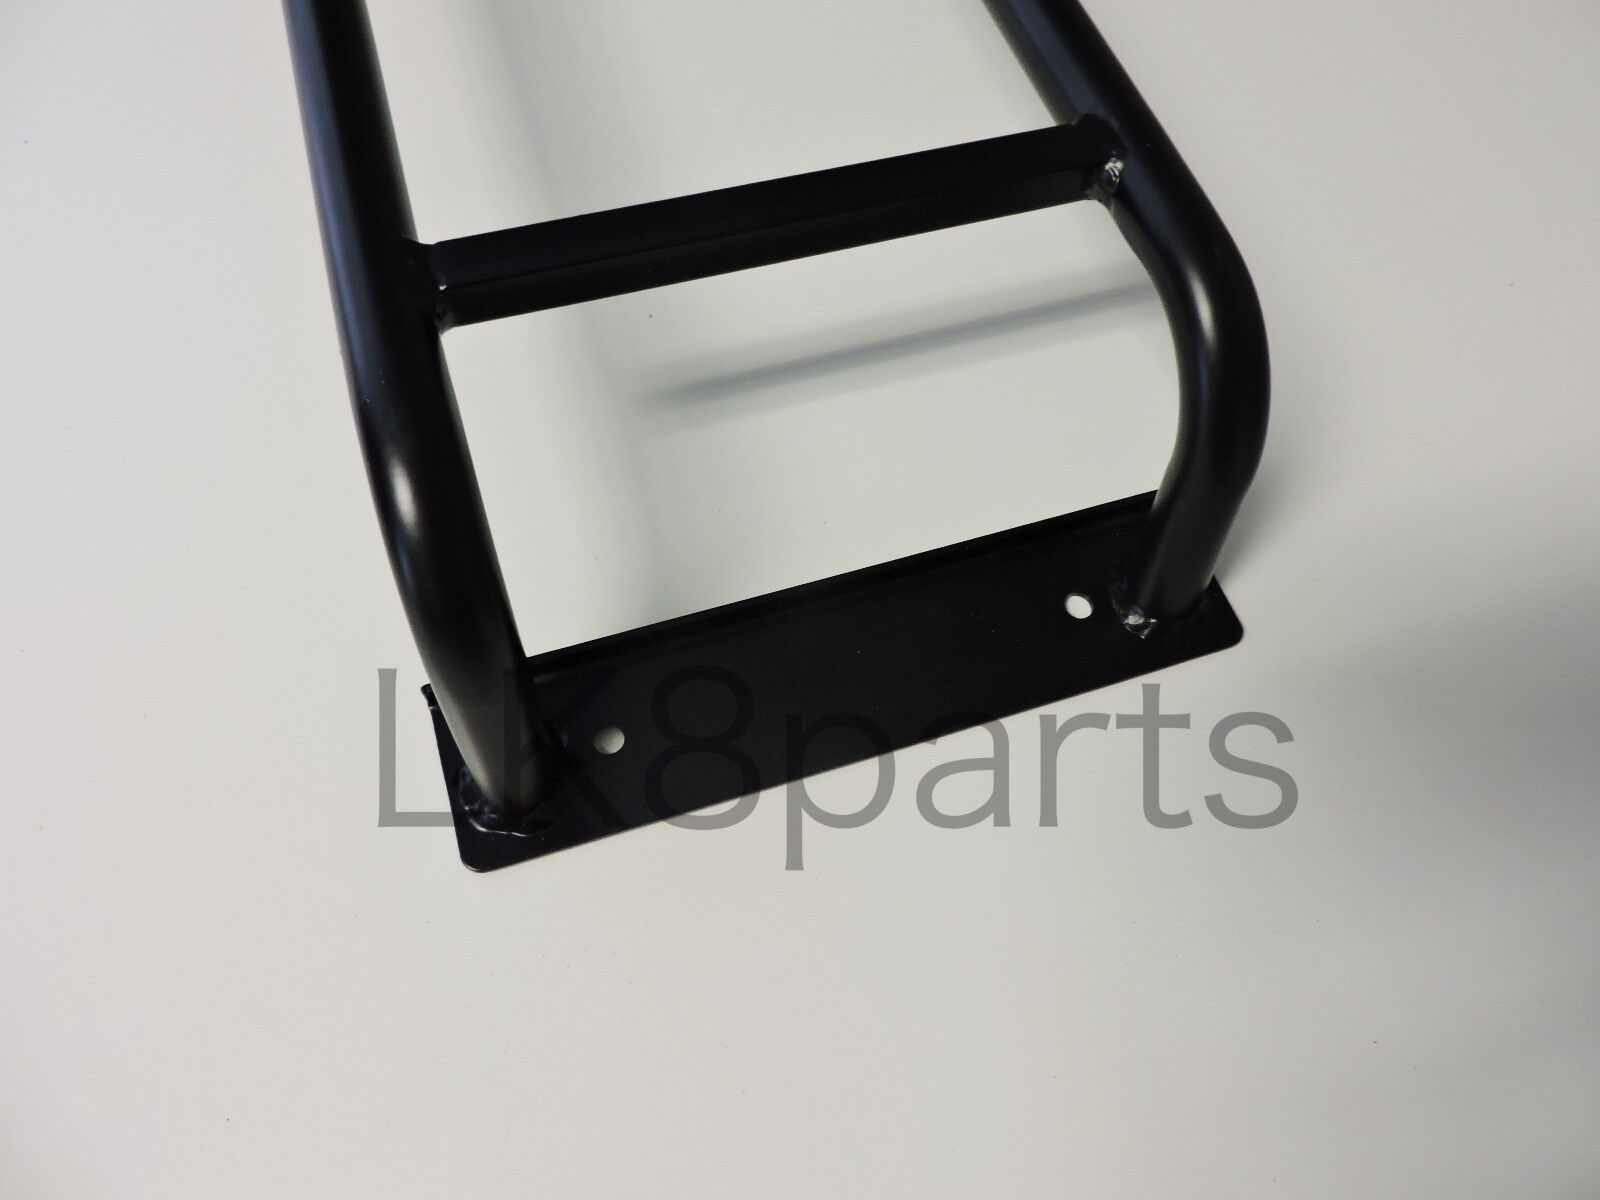 Land Rover Defender Rear Roof Rack Access Ladder Stc50417